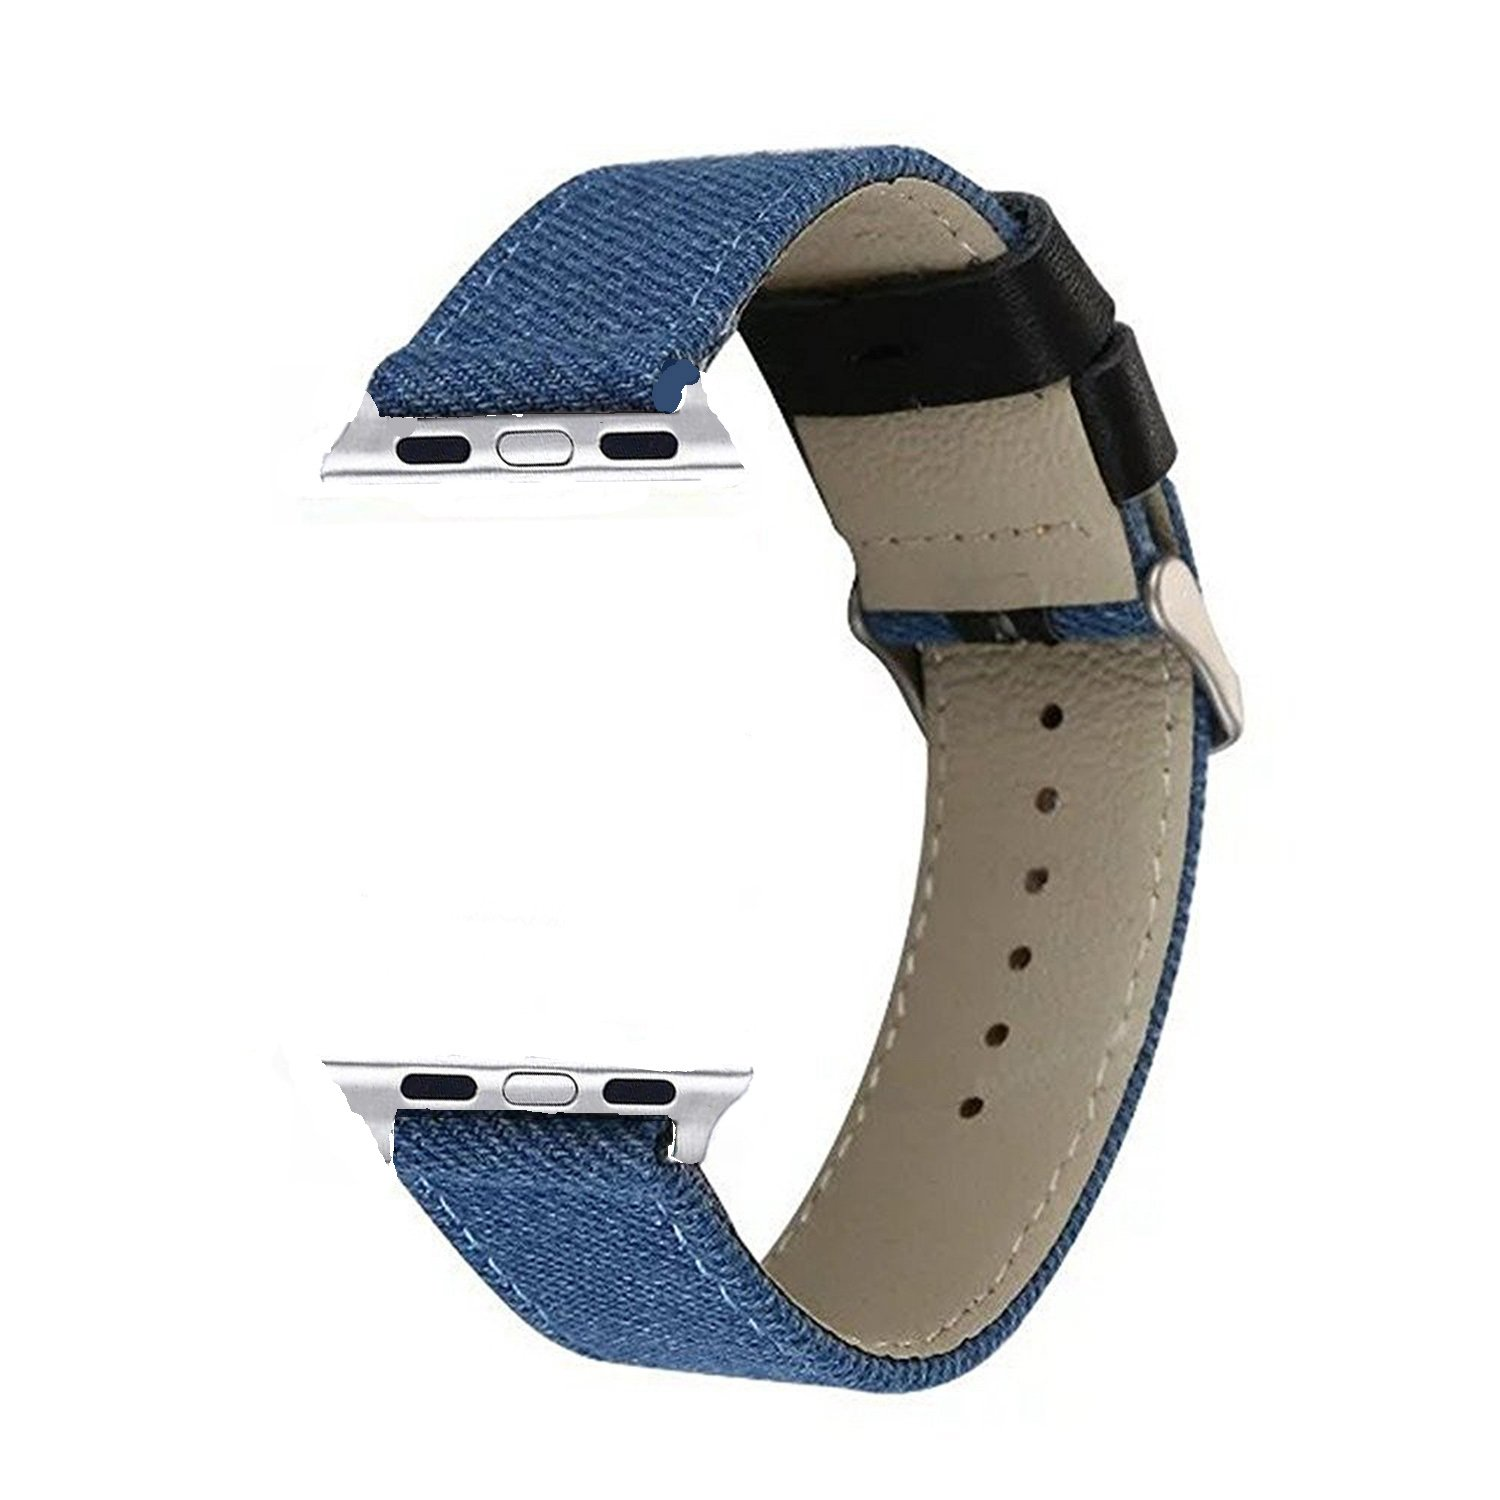 Amazon.com: VONTER Band Compatible for Apple Watch - Smart ...